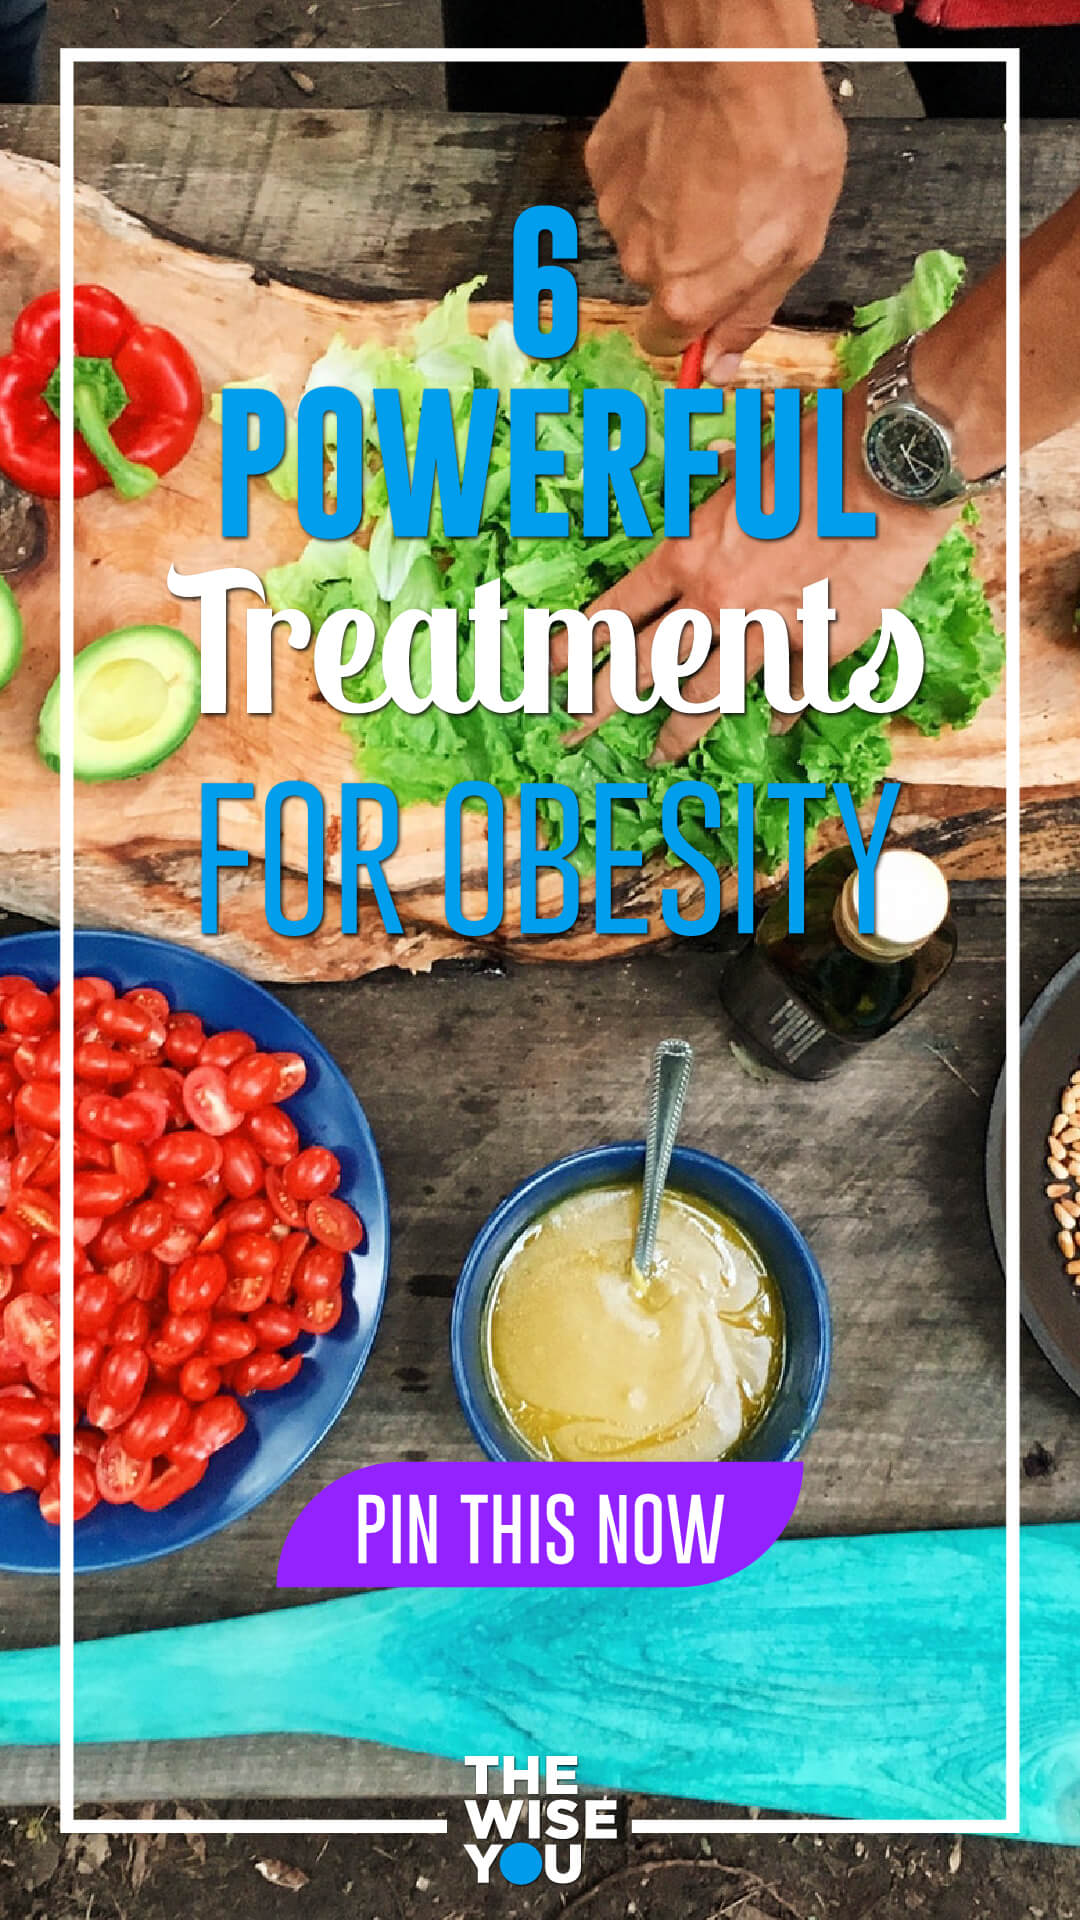 6 Powerful Treatments for Obesity